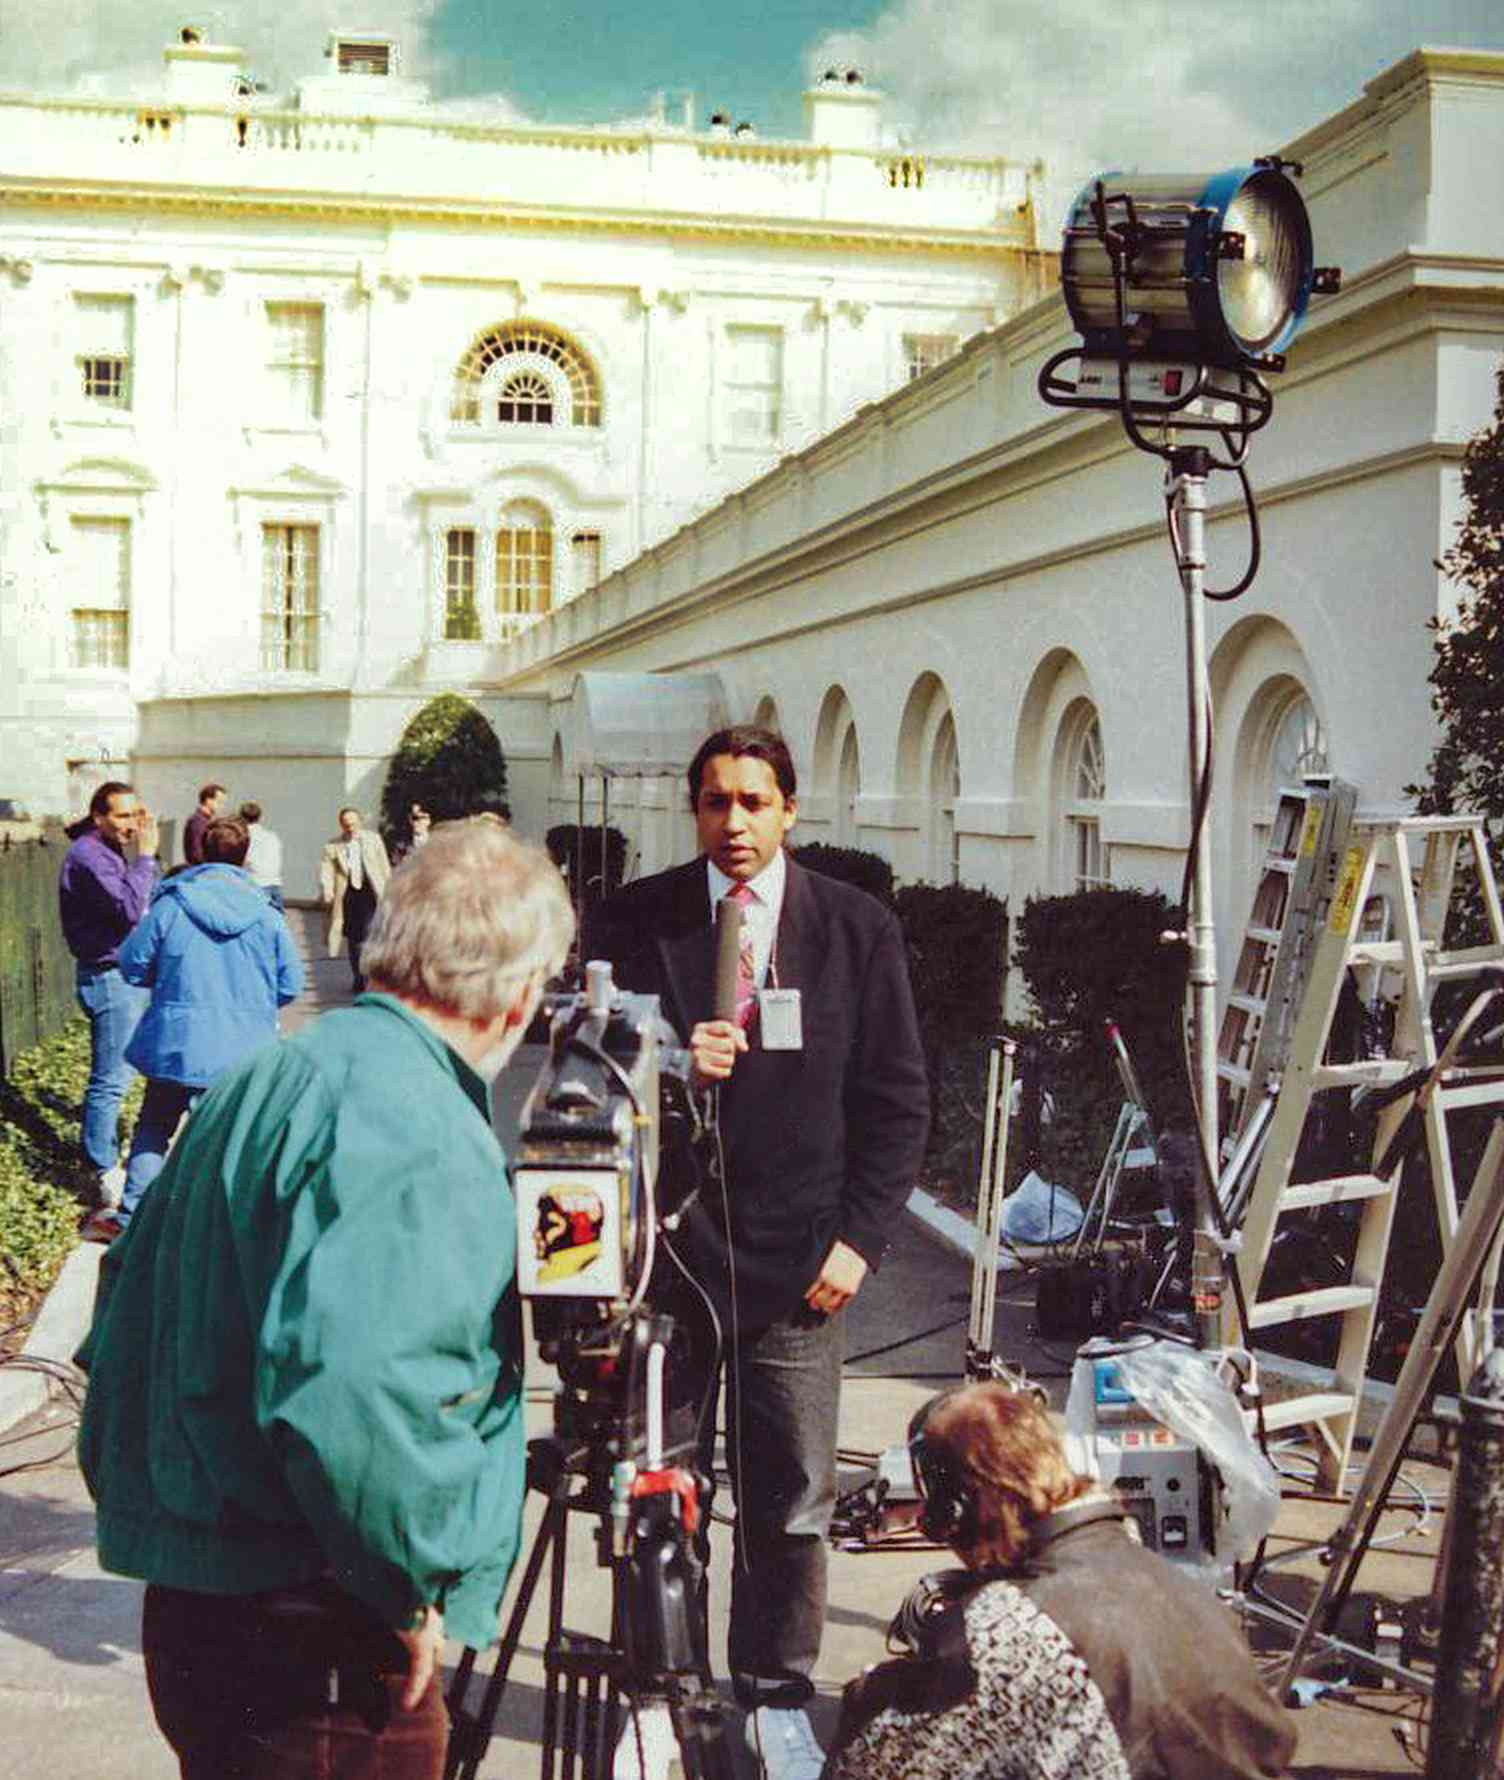 Cherno Jobatey is reporting in front of the West Wing of White House Washington DC